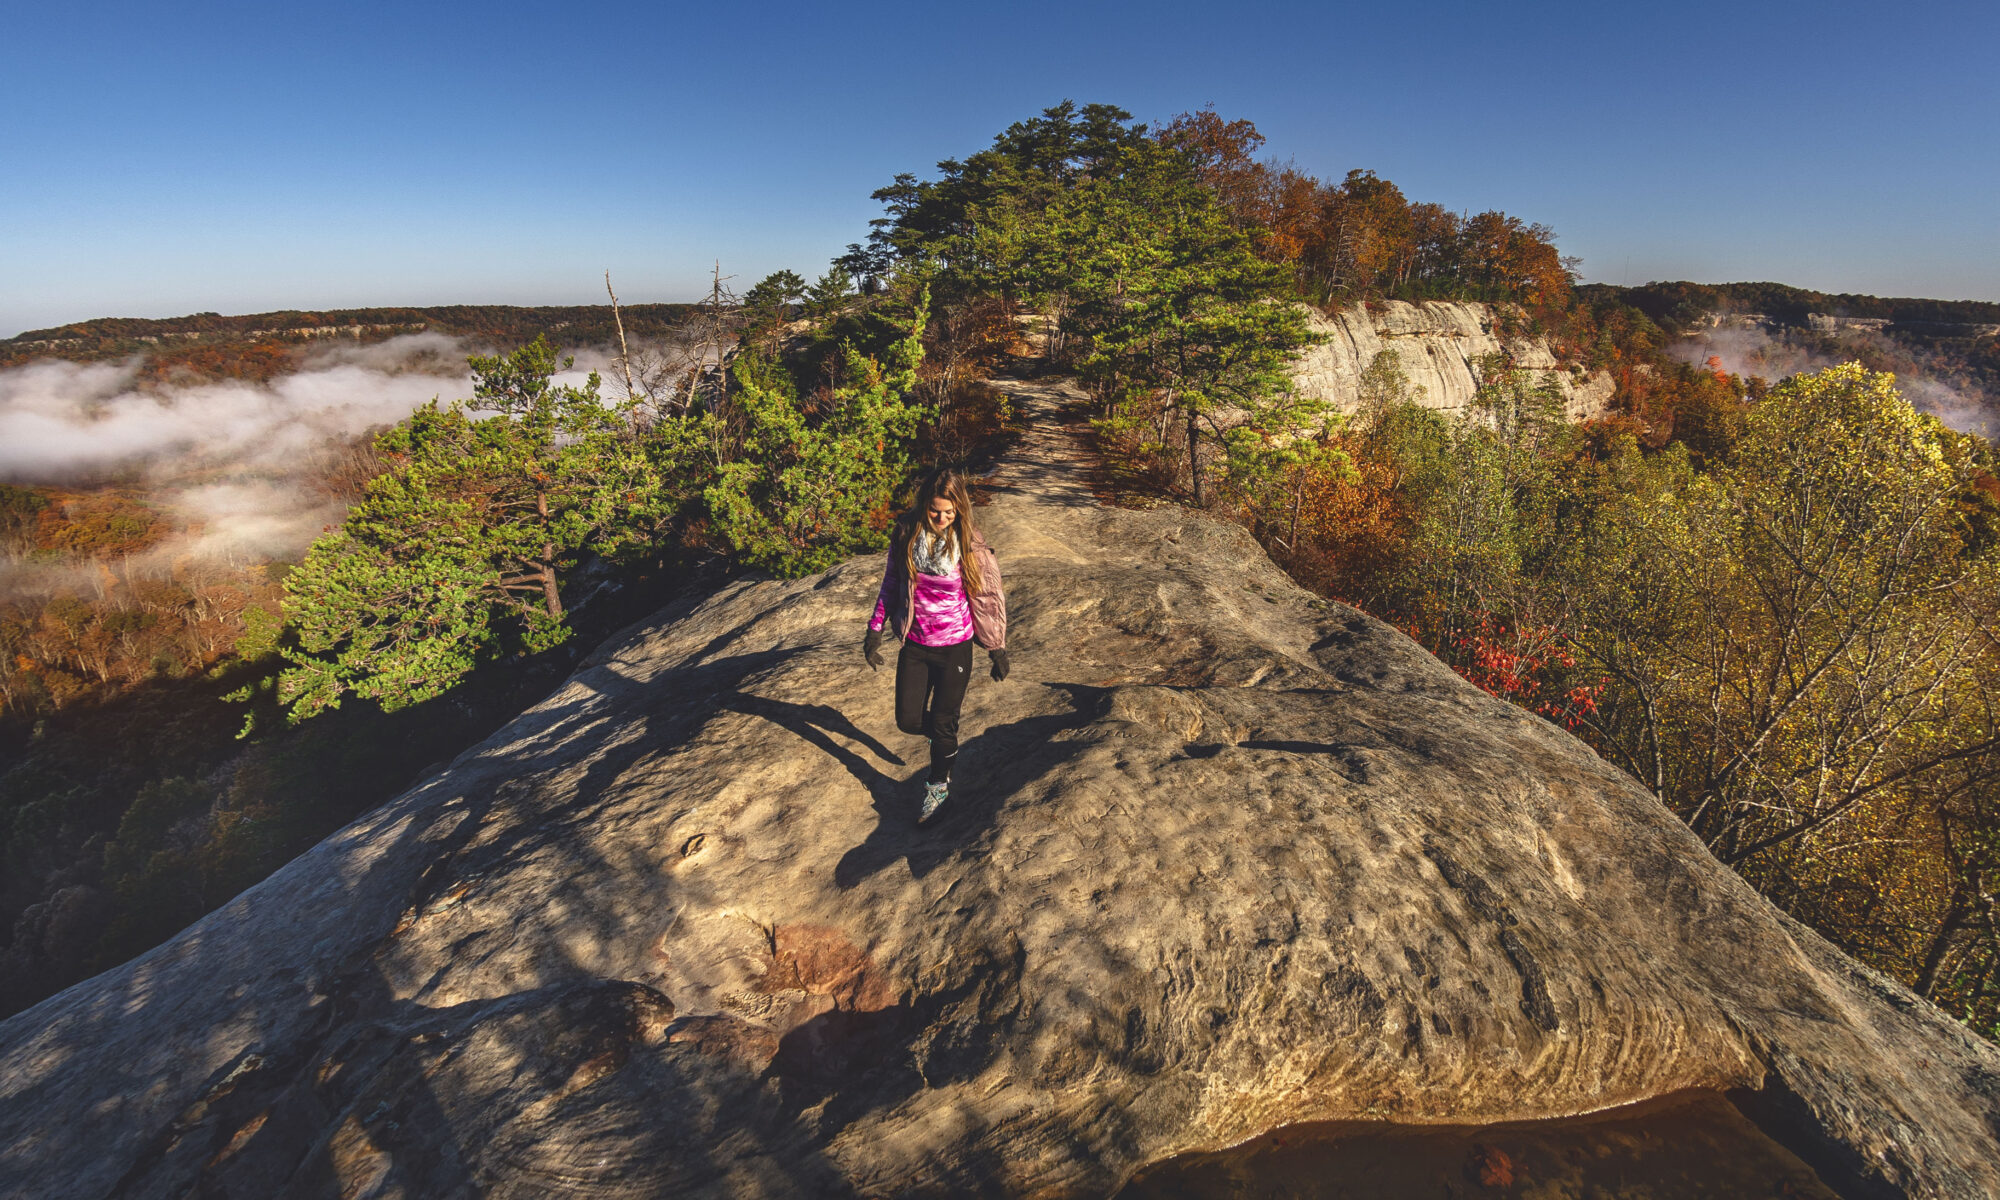 Woman hiking on Auxier Ridge with cliffs on both sides in Red River Gorge, Kentucky